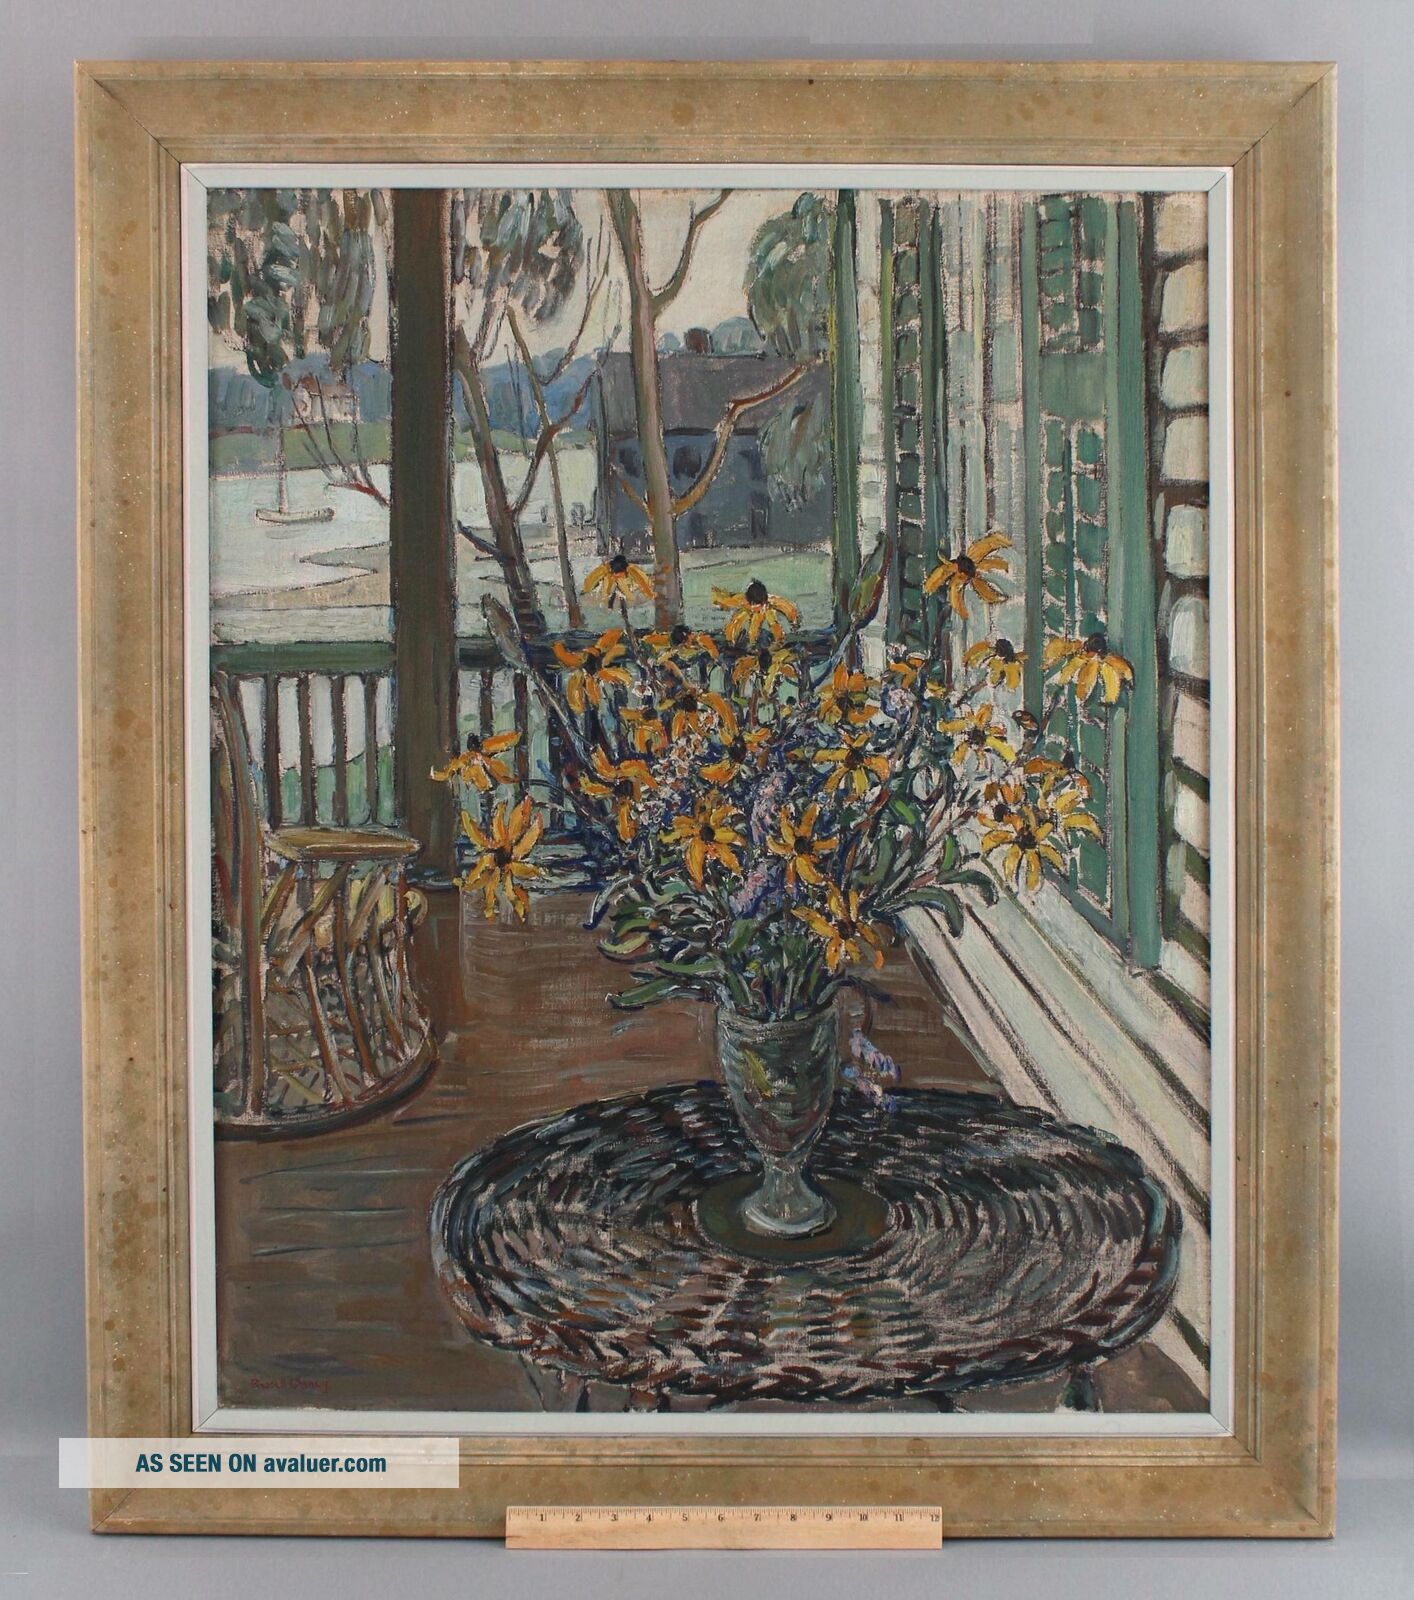 Lrg Antique RUSSELL CHENEY American Impressionist Still Life Flower Oil Painting